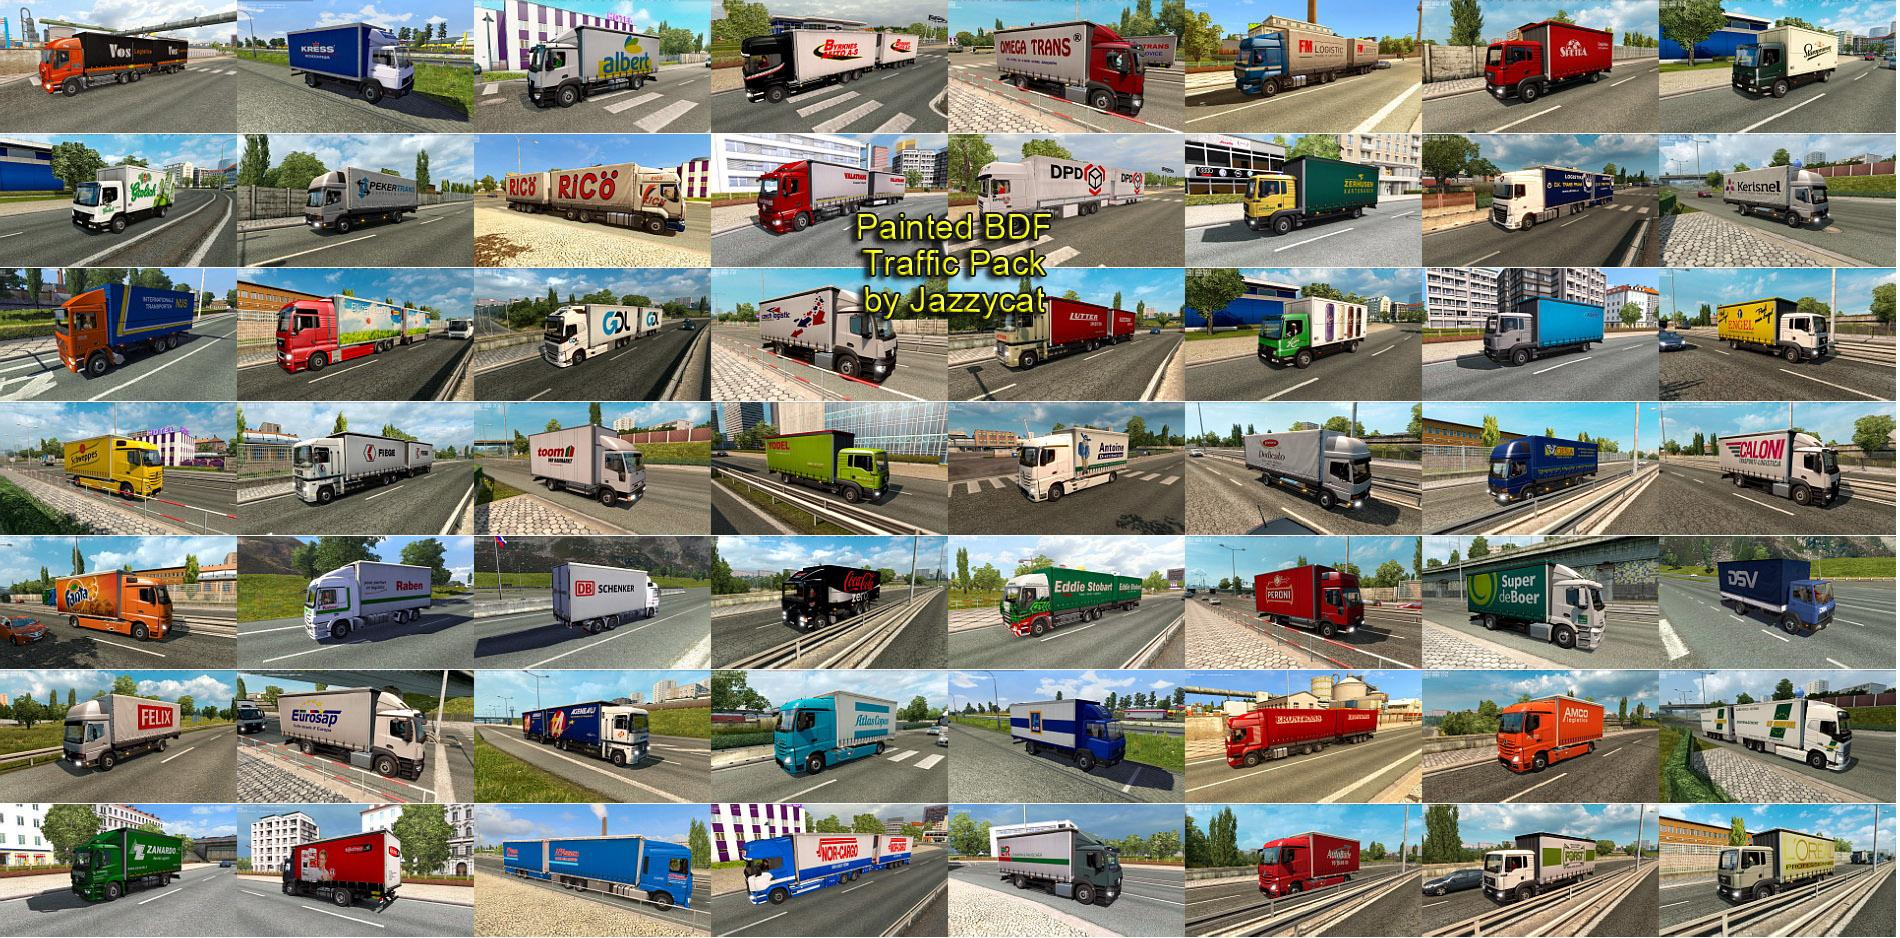 painted bdf traffic pack by jazzycat v2 0 mod   ets2 mod